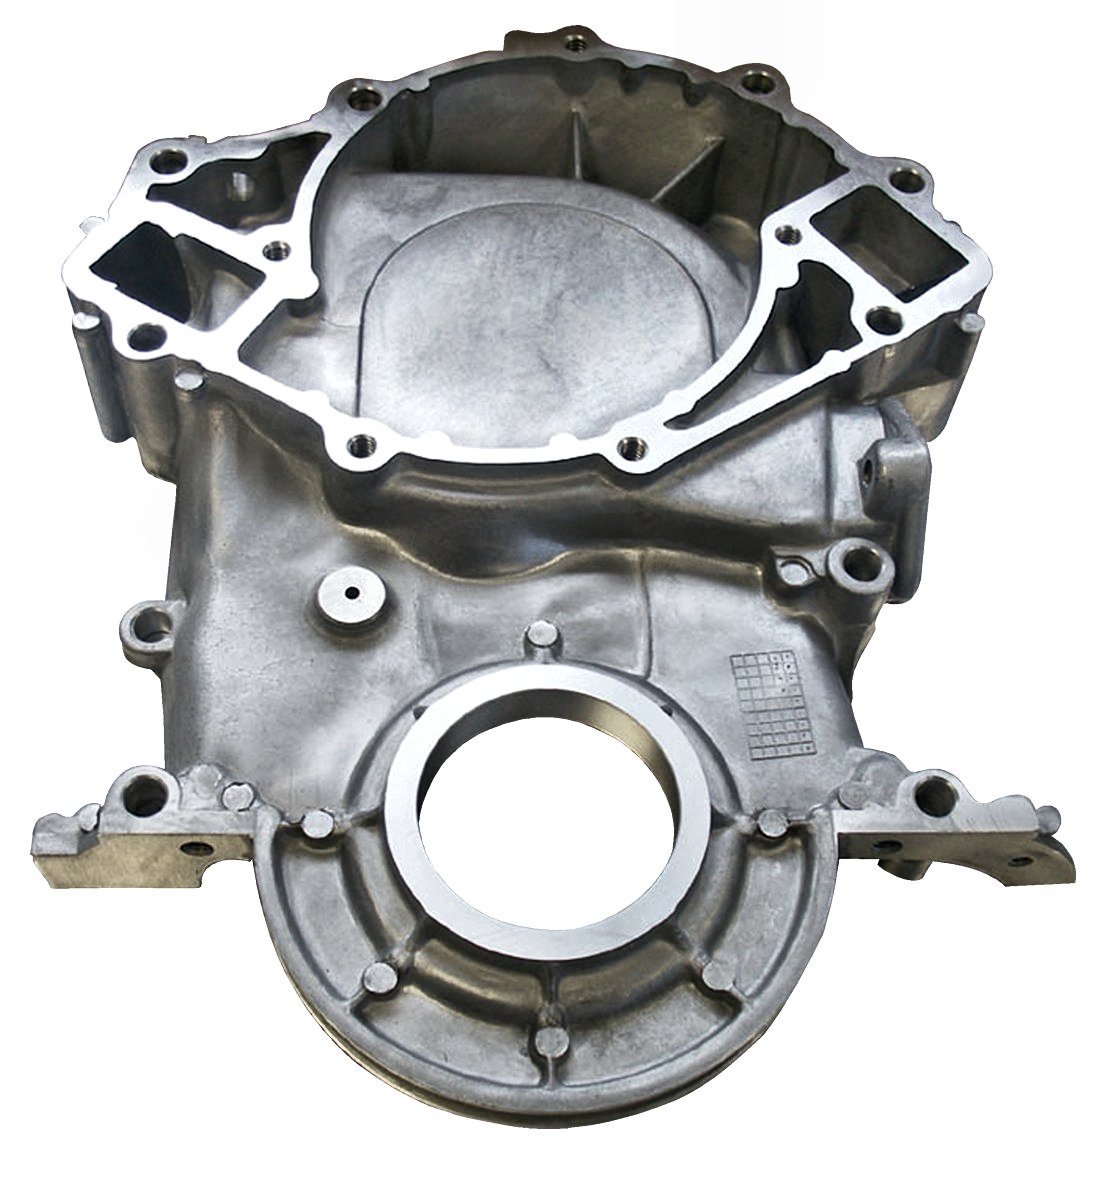 hight resolution of 460 7 5l timing chain cover